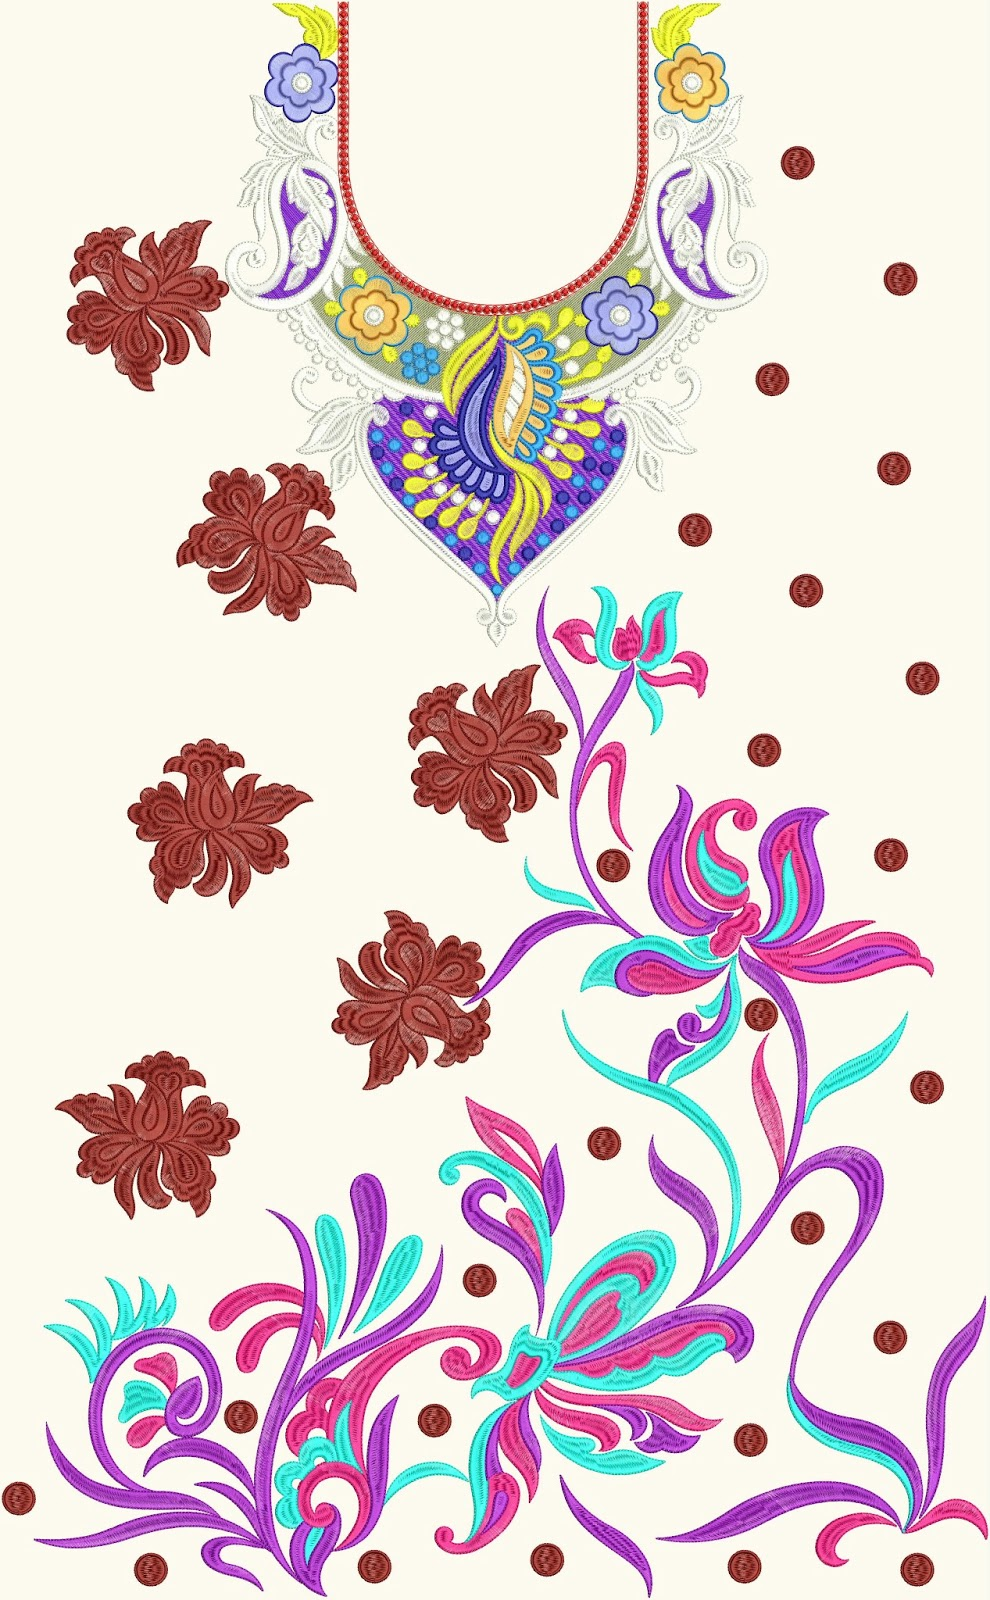 Latest embroidery designs for neck makaroka embdesigntube hot week39s latest embroidery designs bankloansurffo Gallery